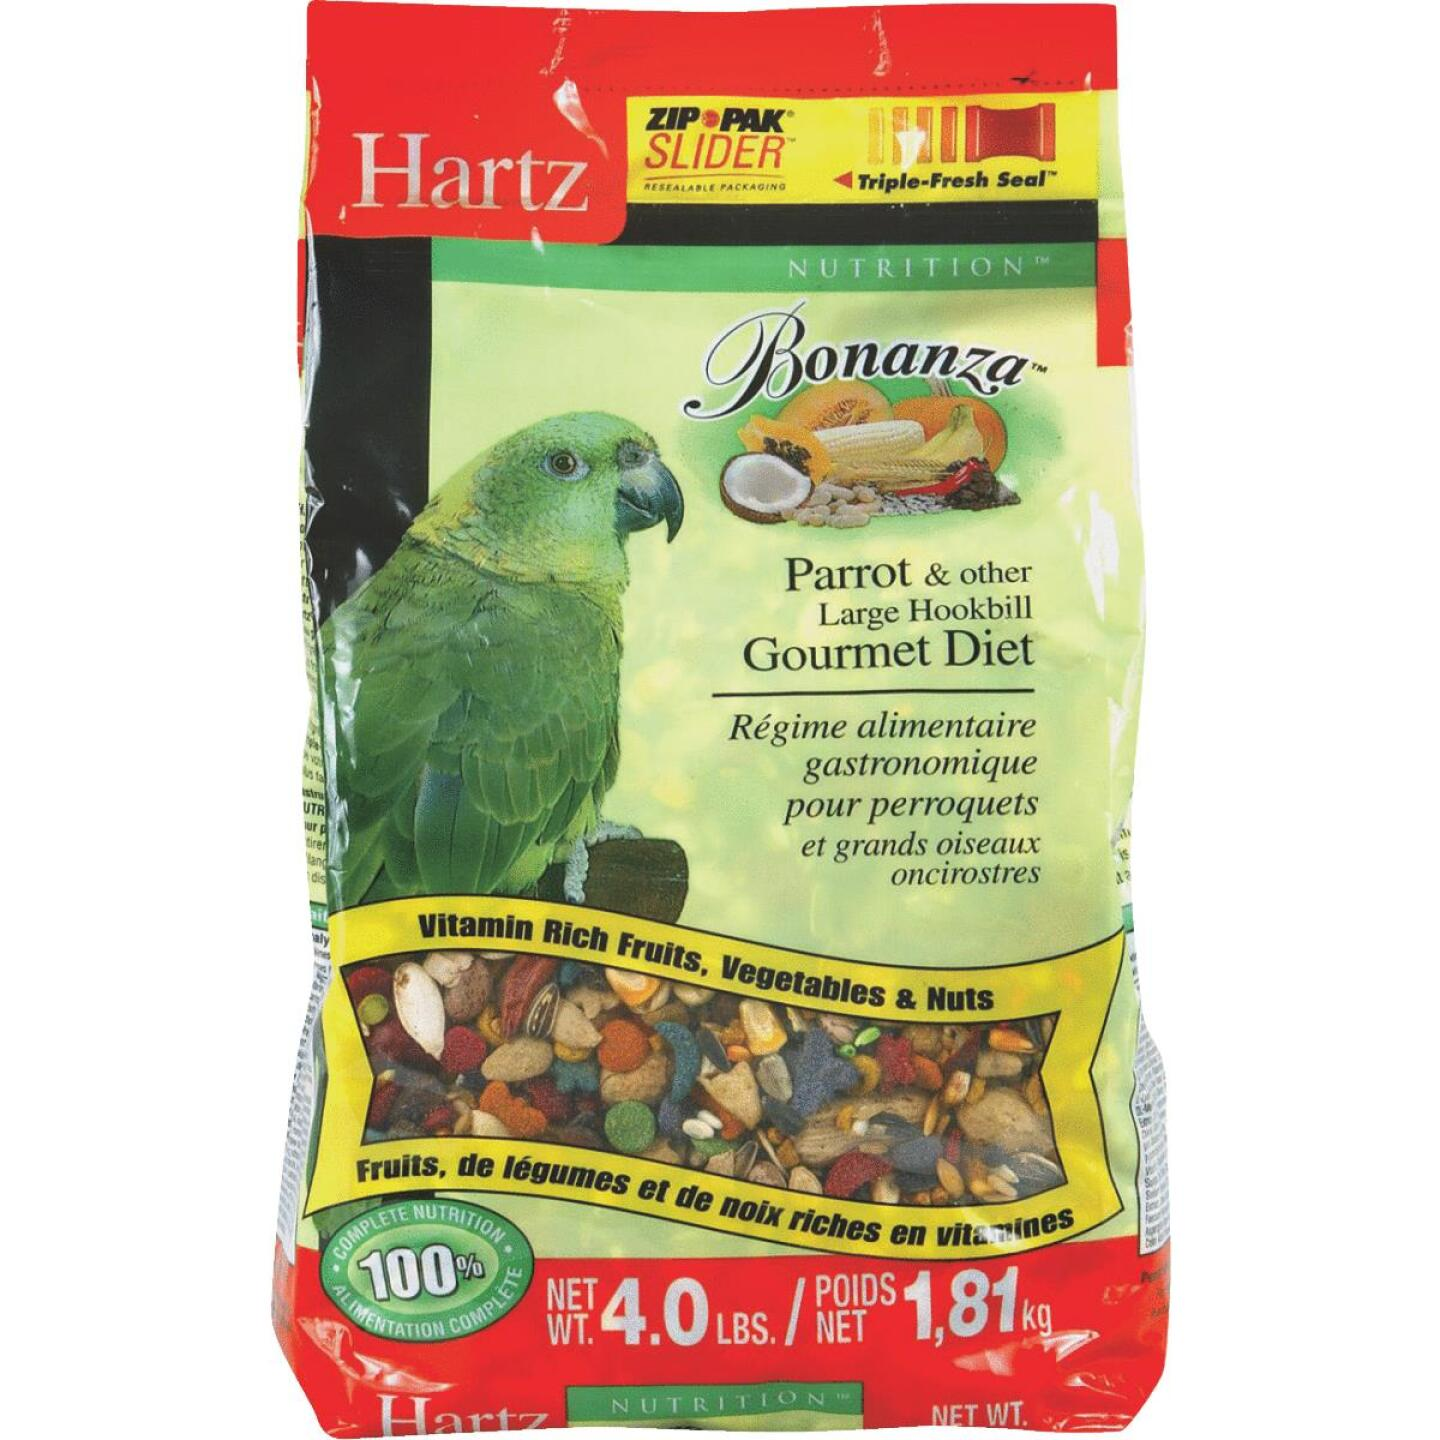 Bonanza 4 Lb. Complete Nutrition Parrot and Large Hookbill Gourmet Diet Bird Food  Image 1